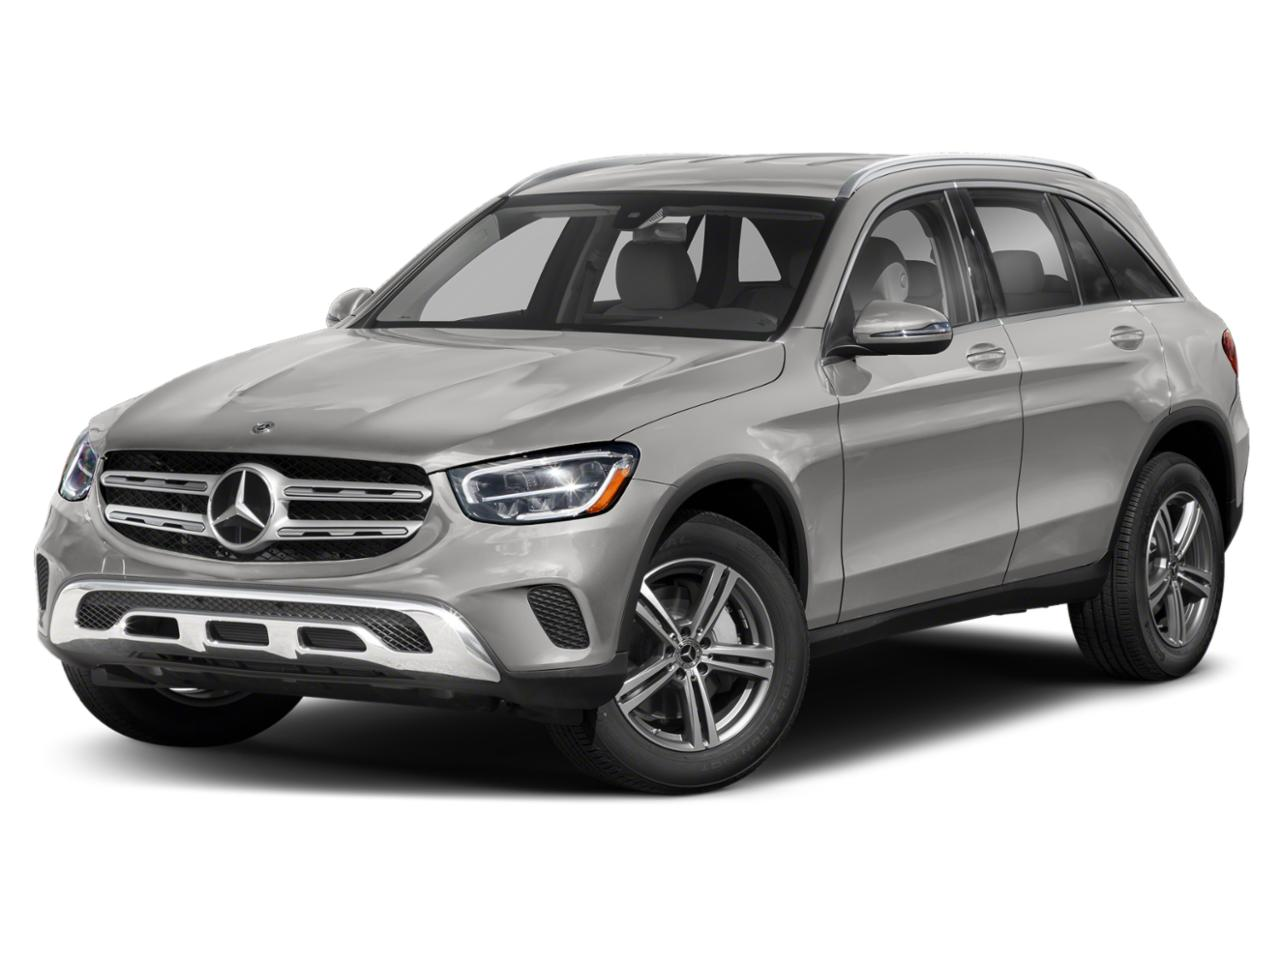 2020 Mercedes-Benz GLC Vehicle Photo in Flemington, NJ 08822